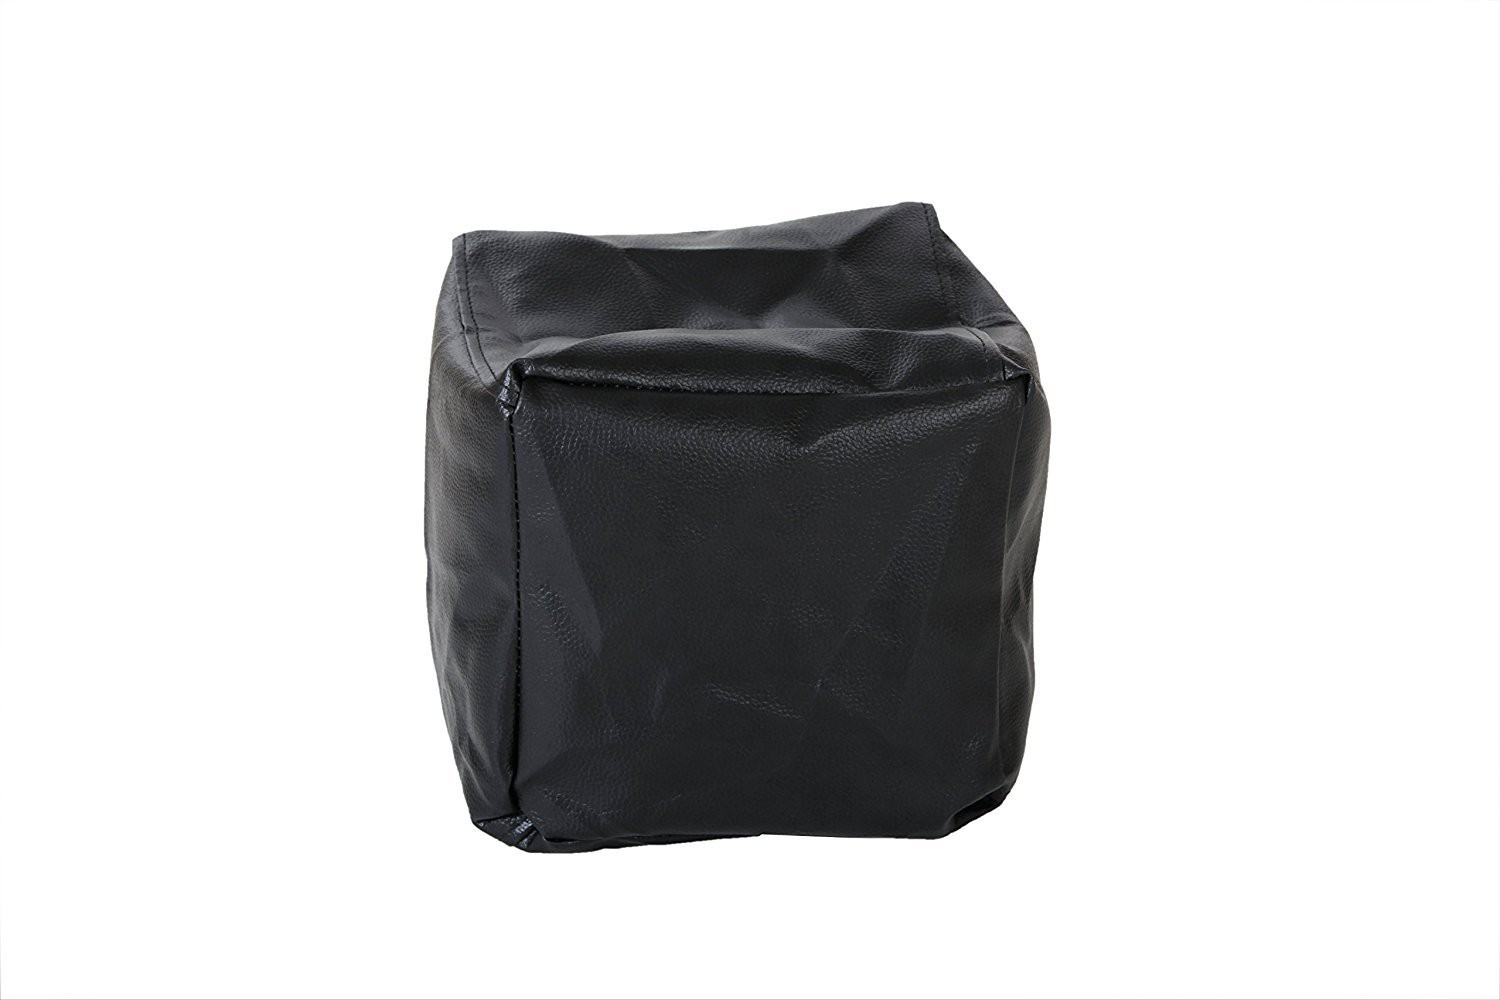 View Furniture Land Medium Bean Bag Cover(Black) Furniture (Furniture Land)